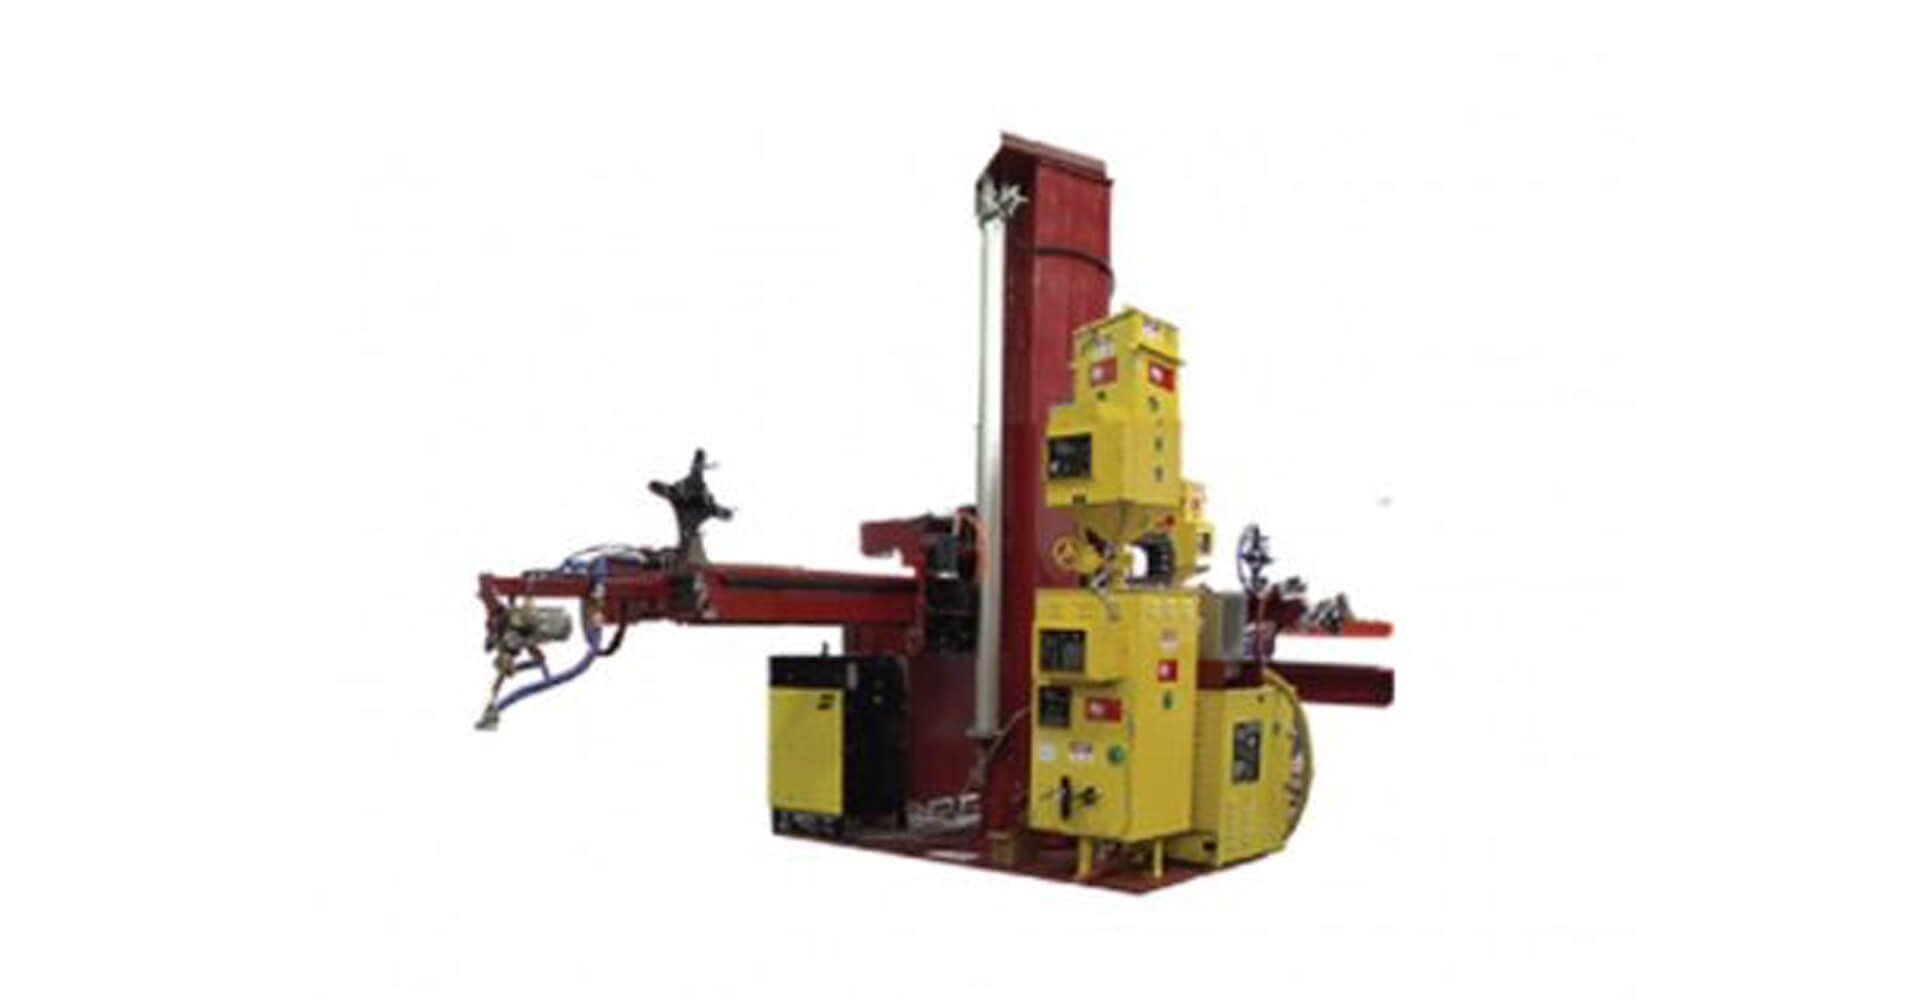 arc-10s_Submerged Arc Welding System